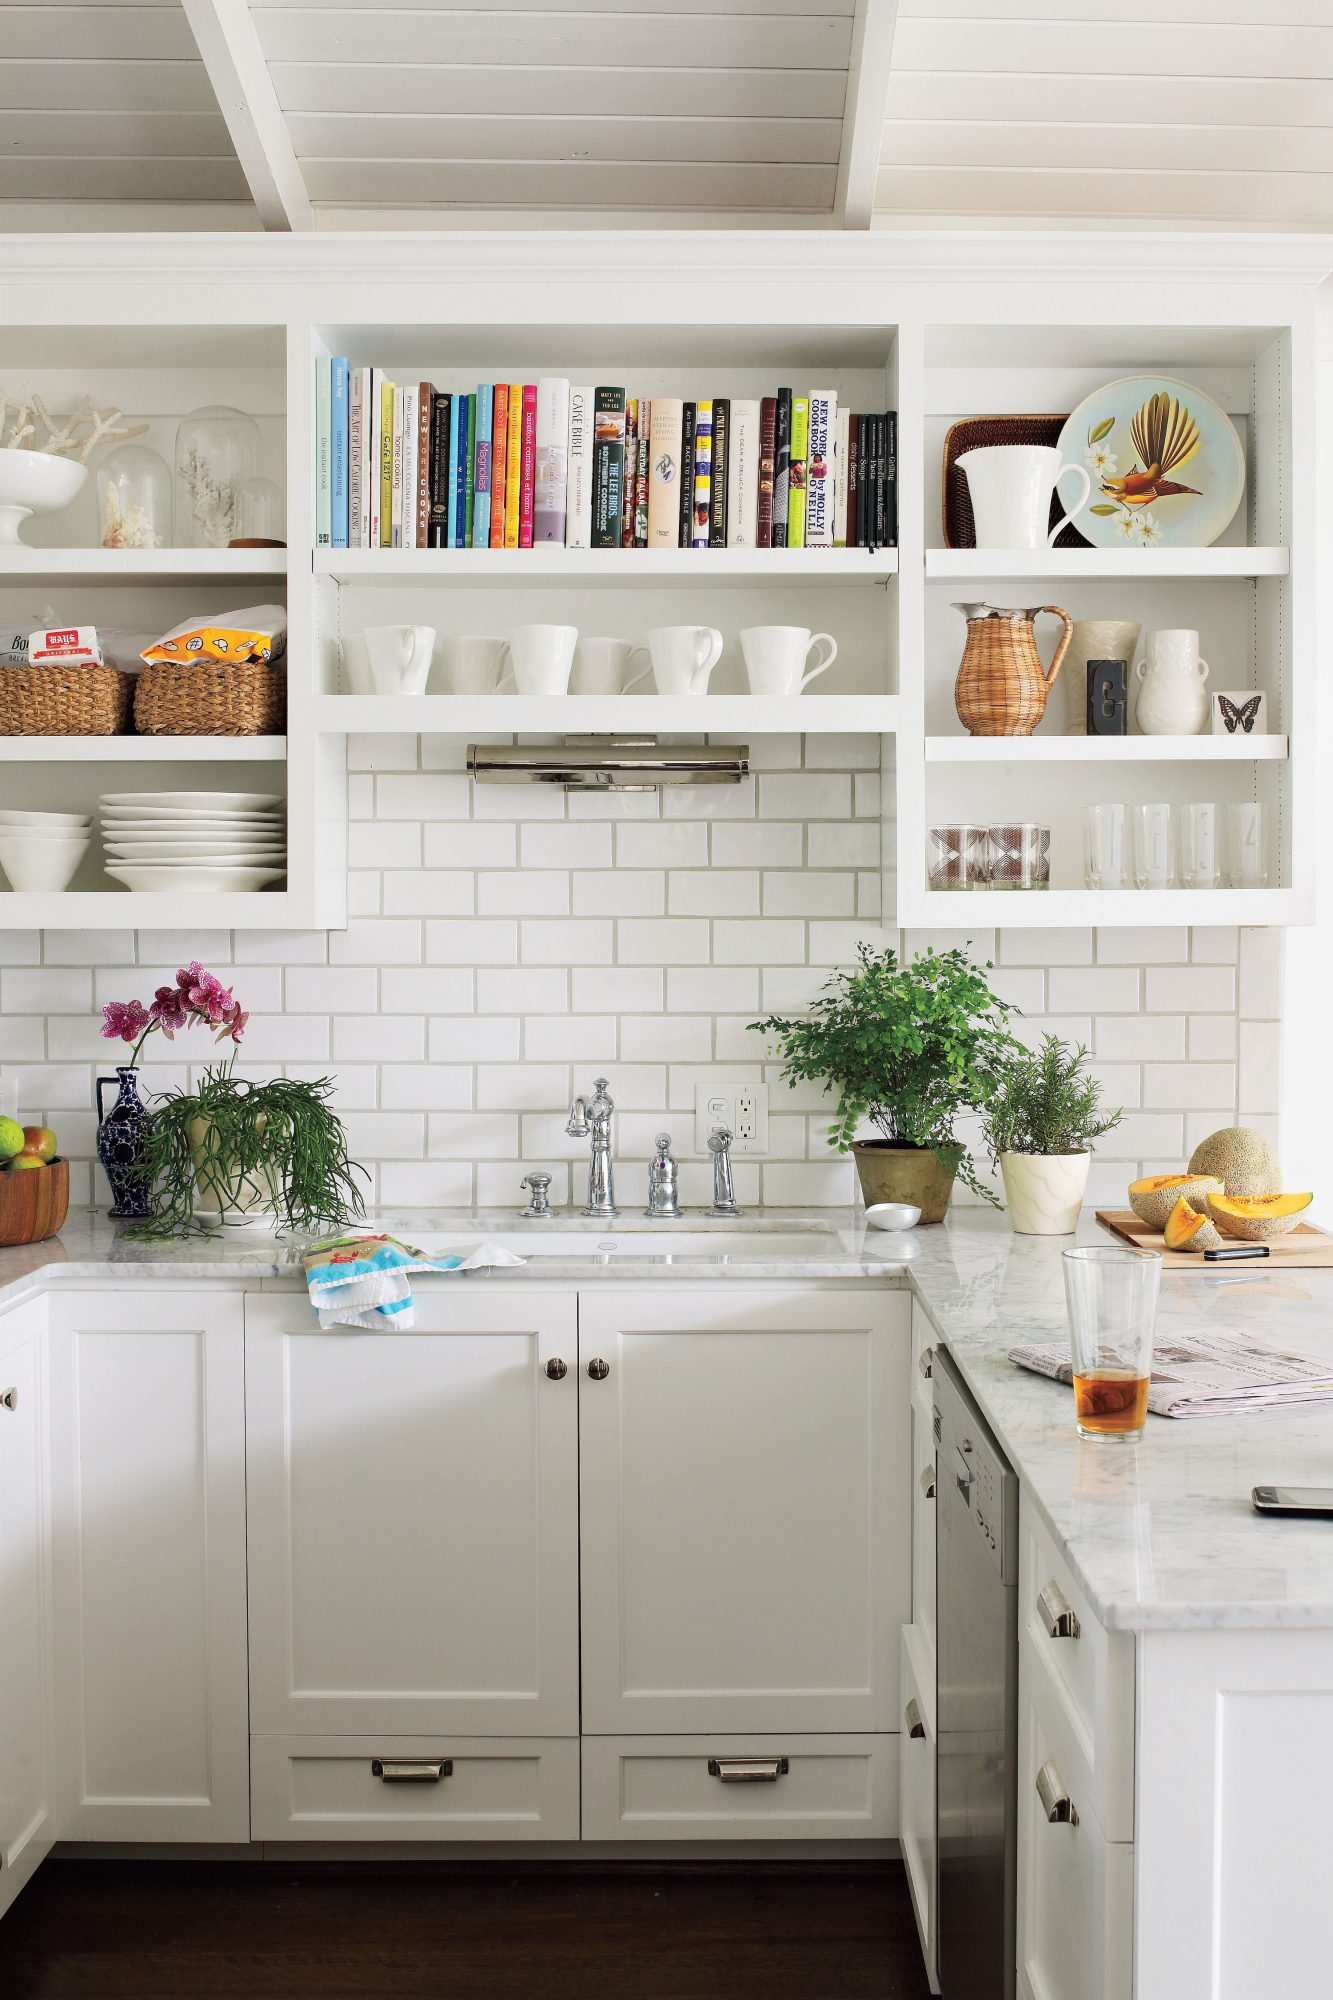 7 Simple Ways to Declutter Your Kitchen